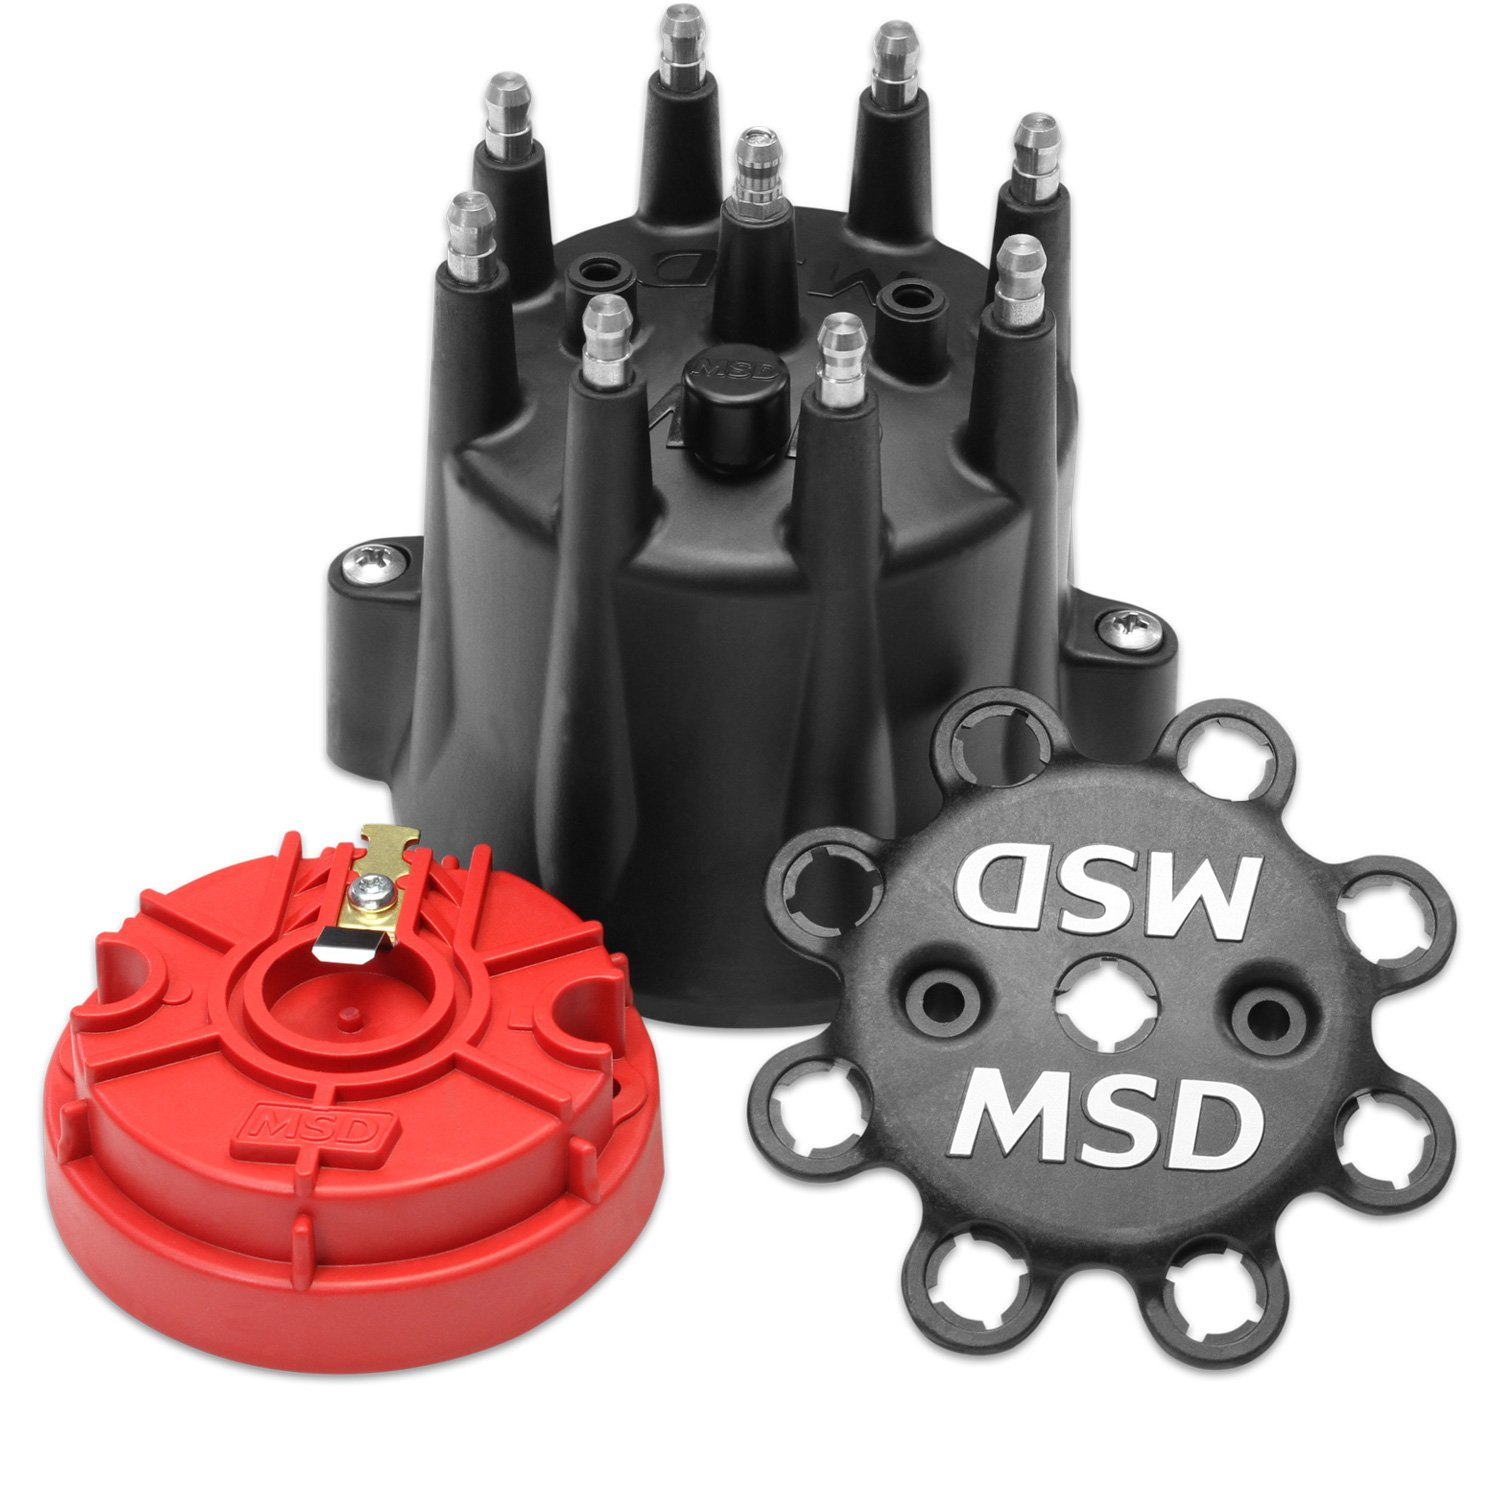 Msd 84336 Black Chevy V8 Hei Distributor Cap And Rotor Conversion Image